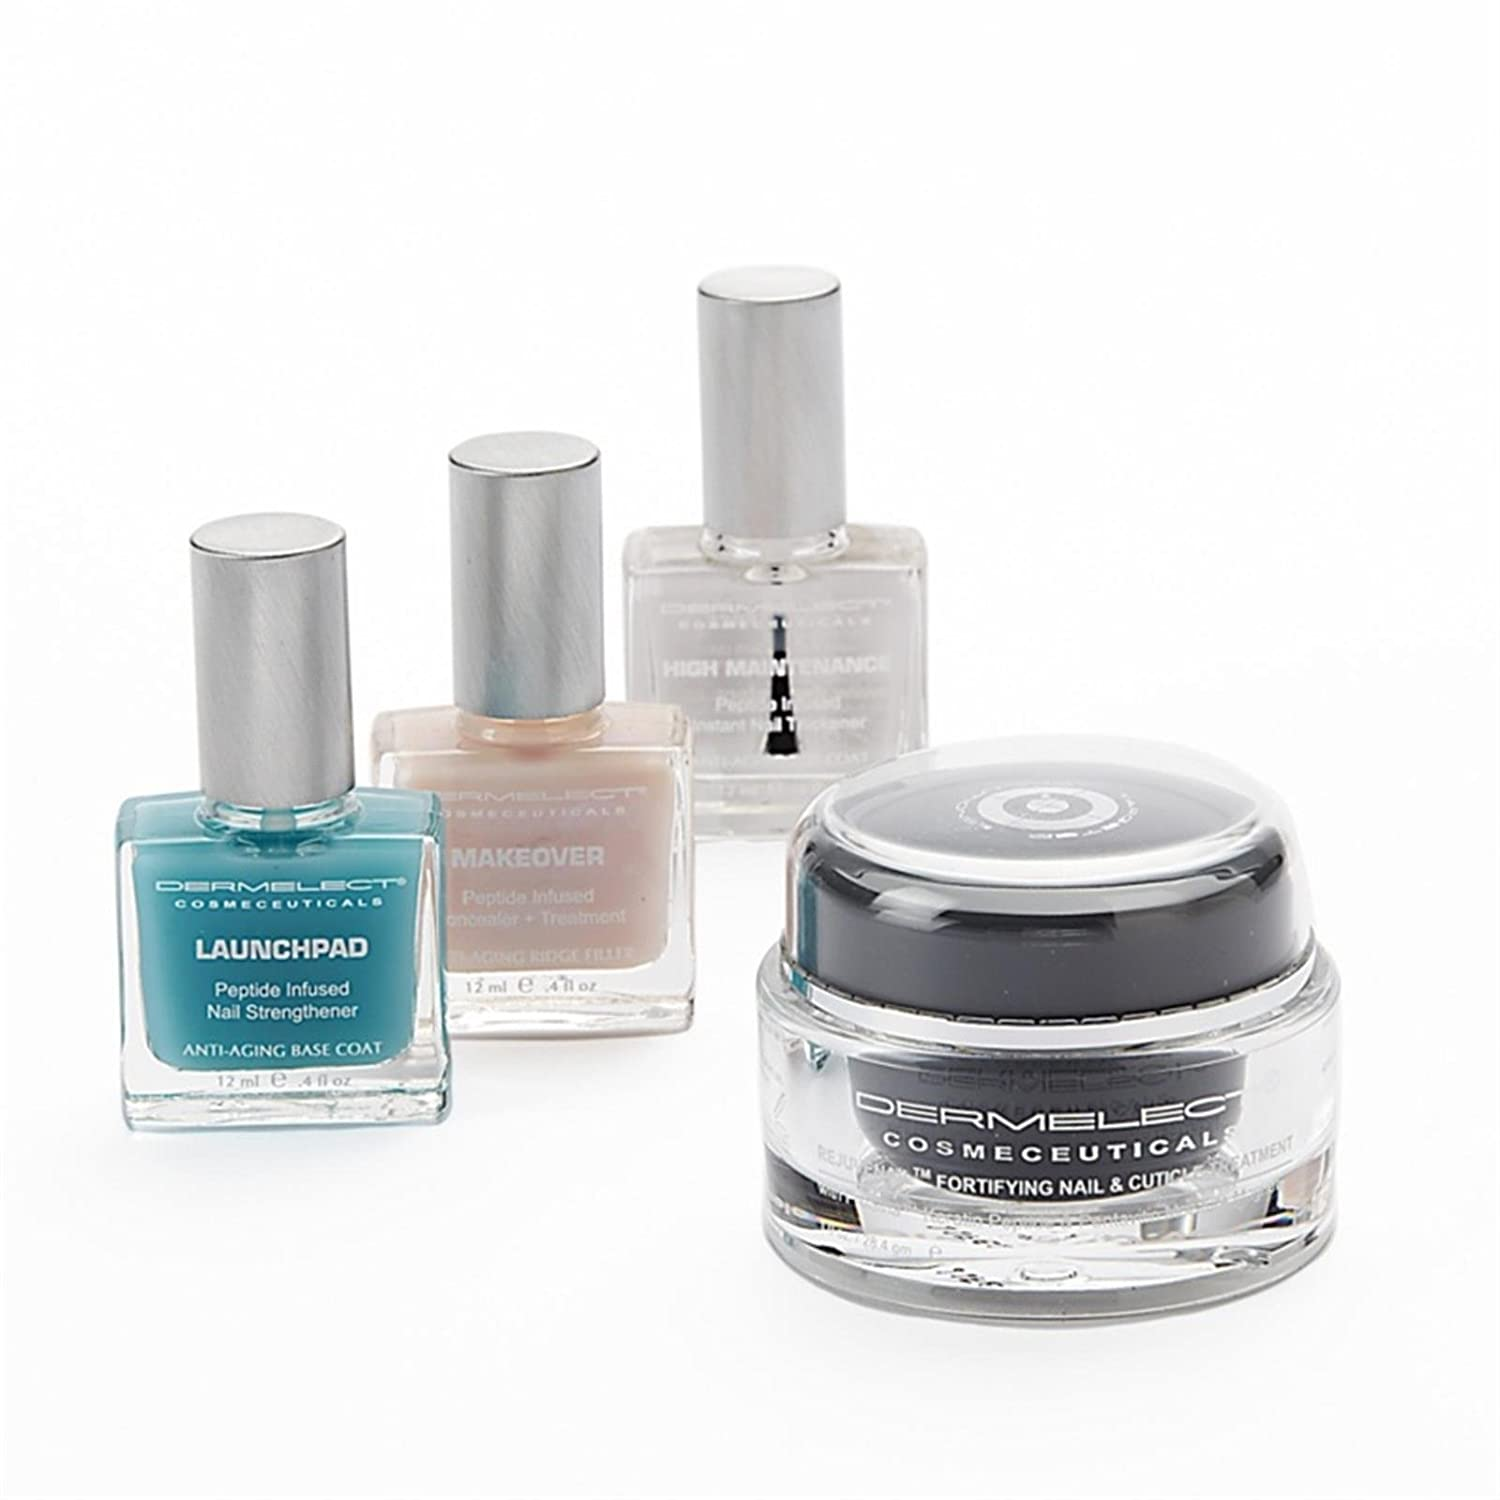 Amazon.com : Dermelect Cosmeceuticals Nail Recovery System, 2.2 ...